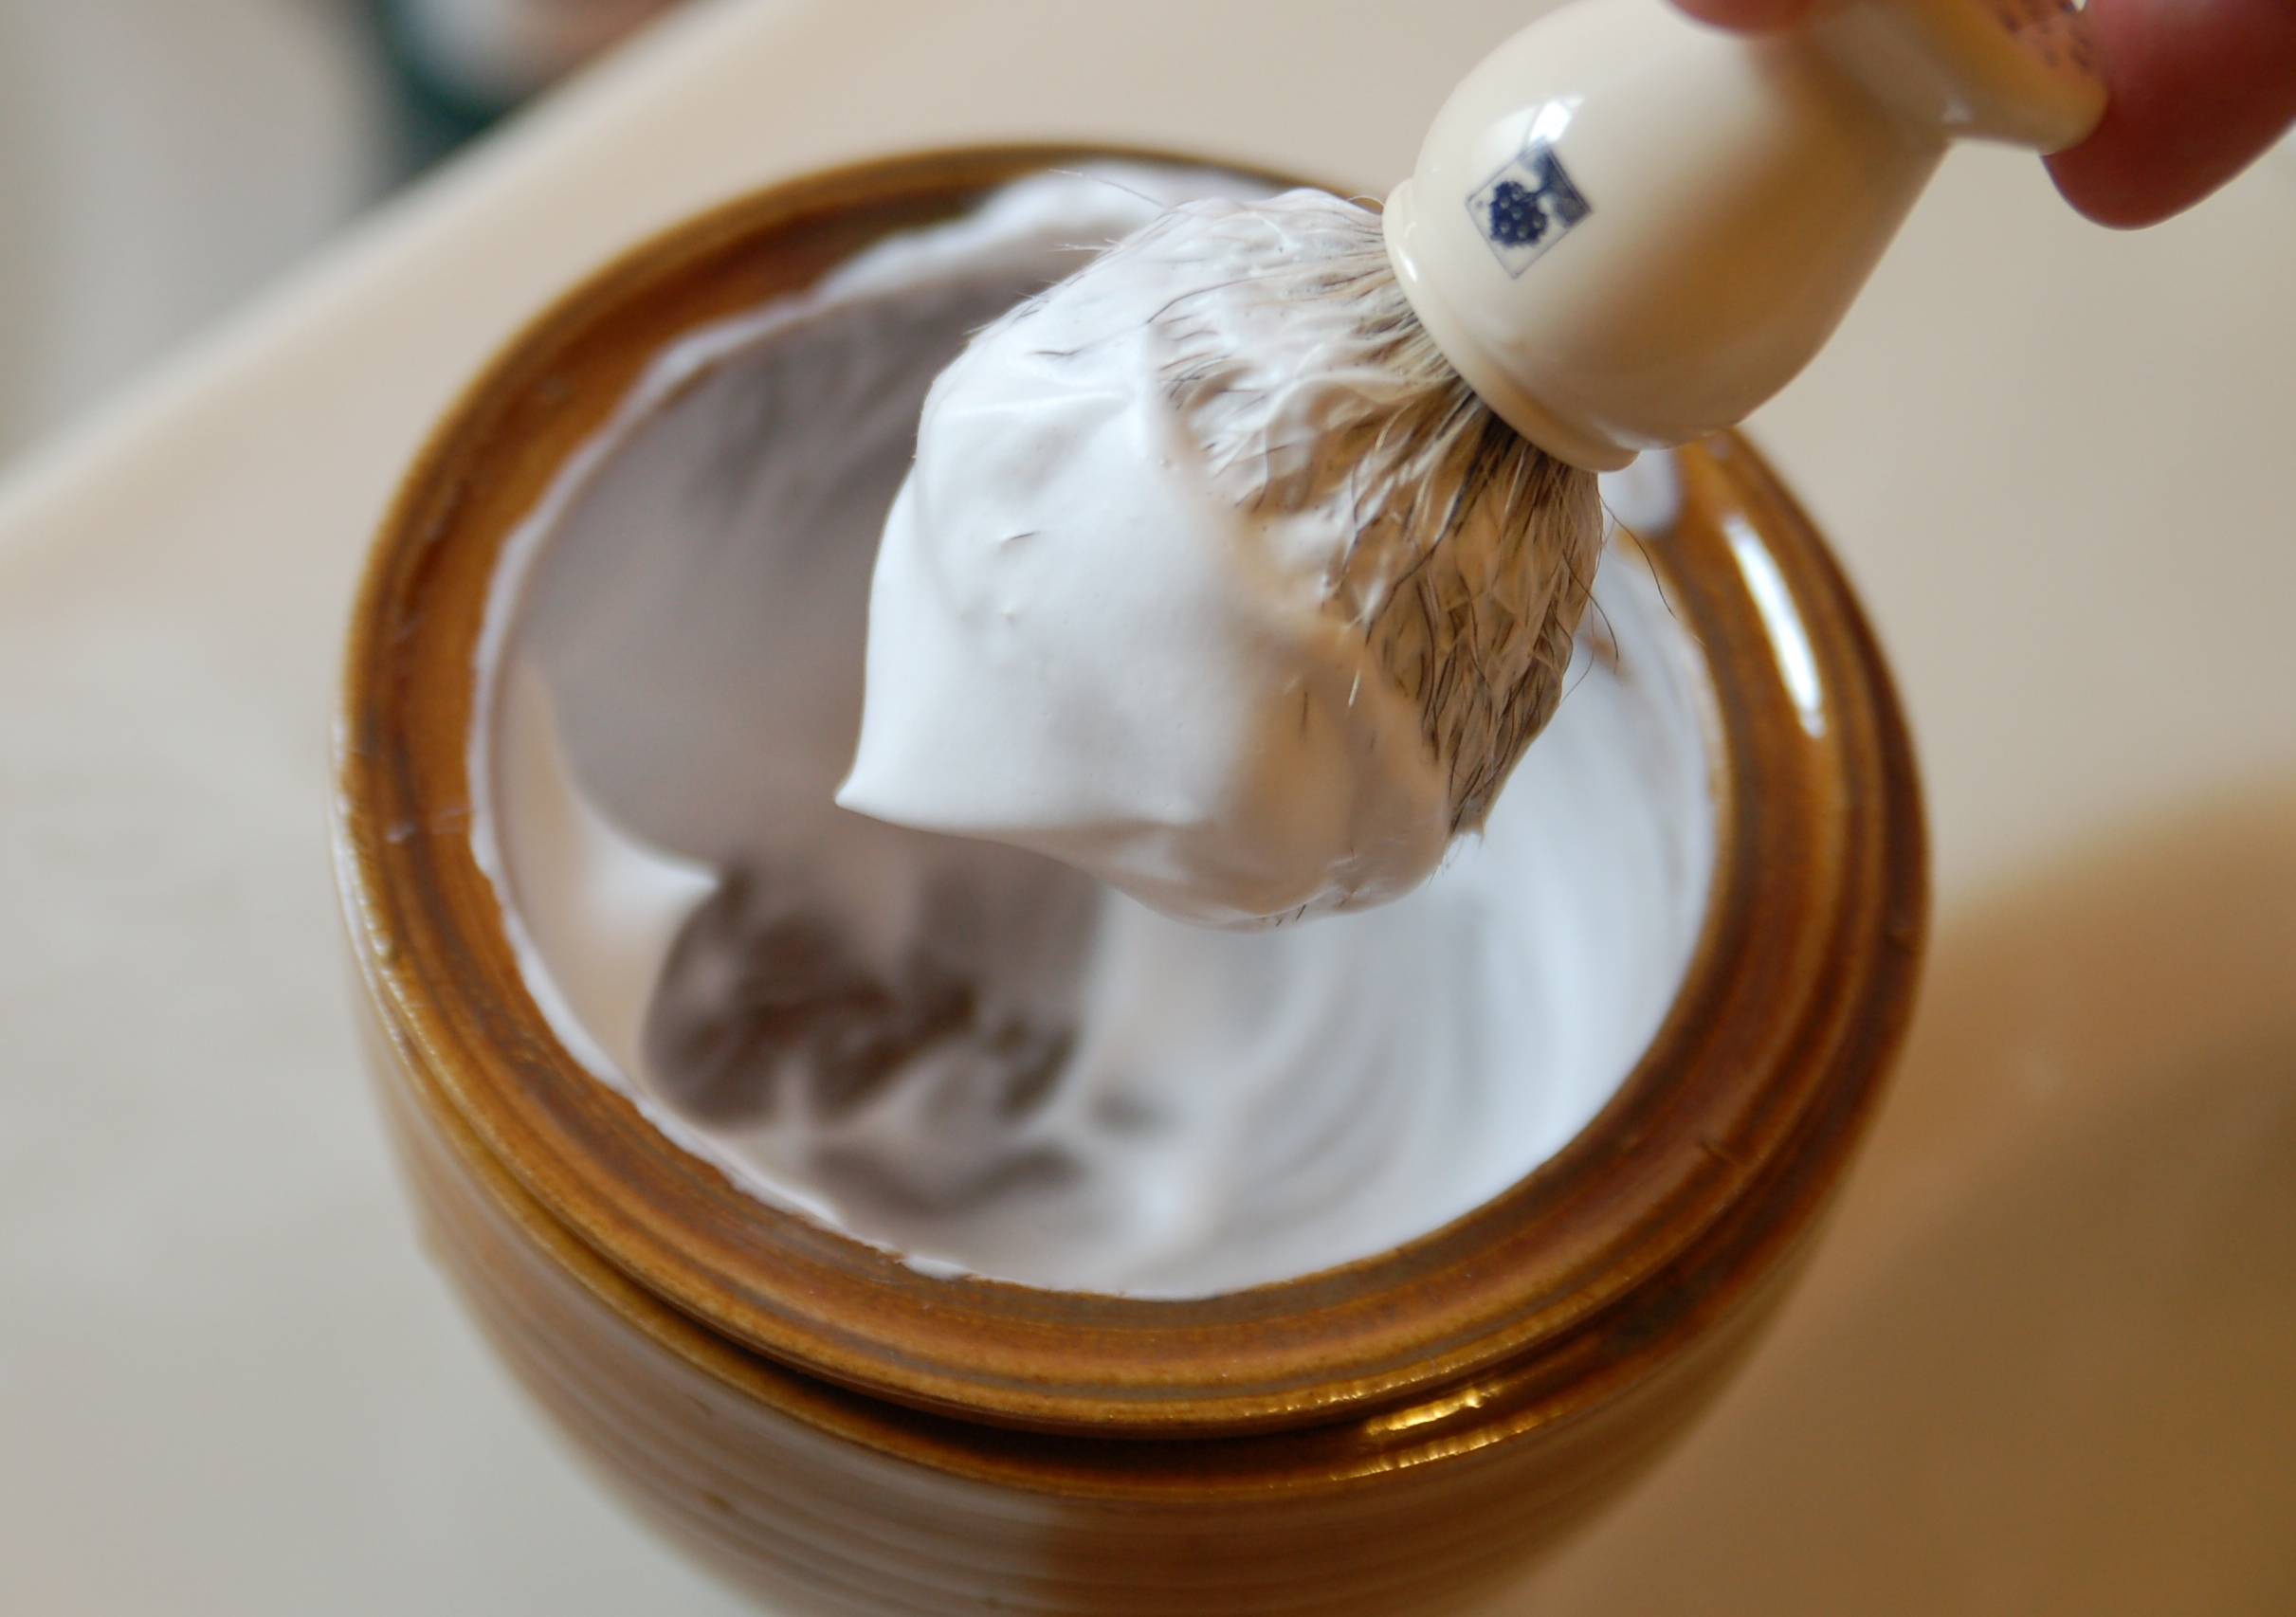 Shaving Cream versus Shaving Soap